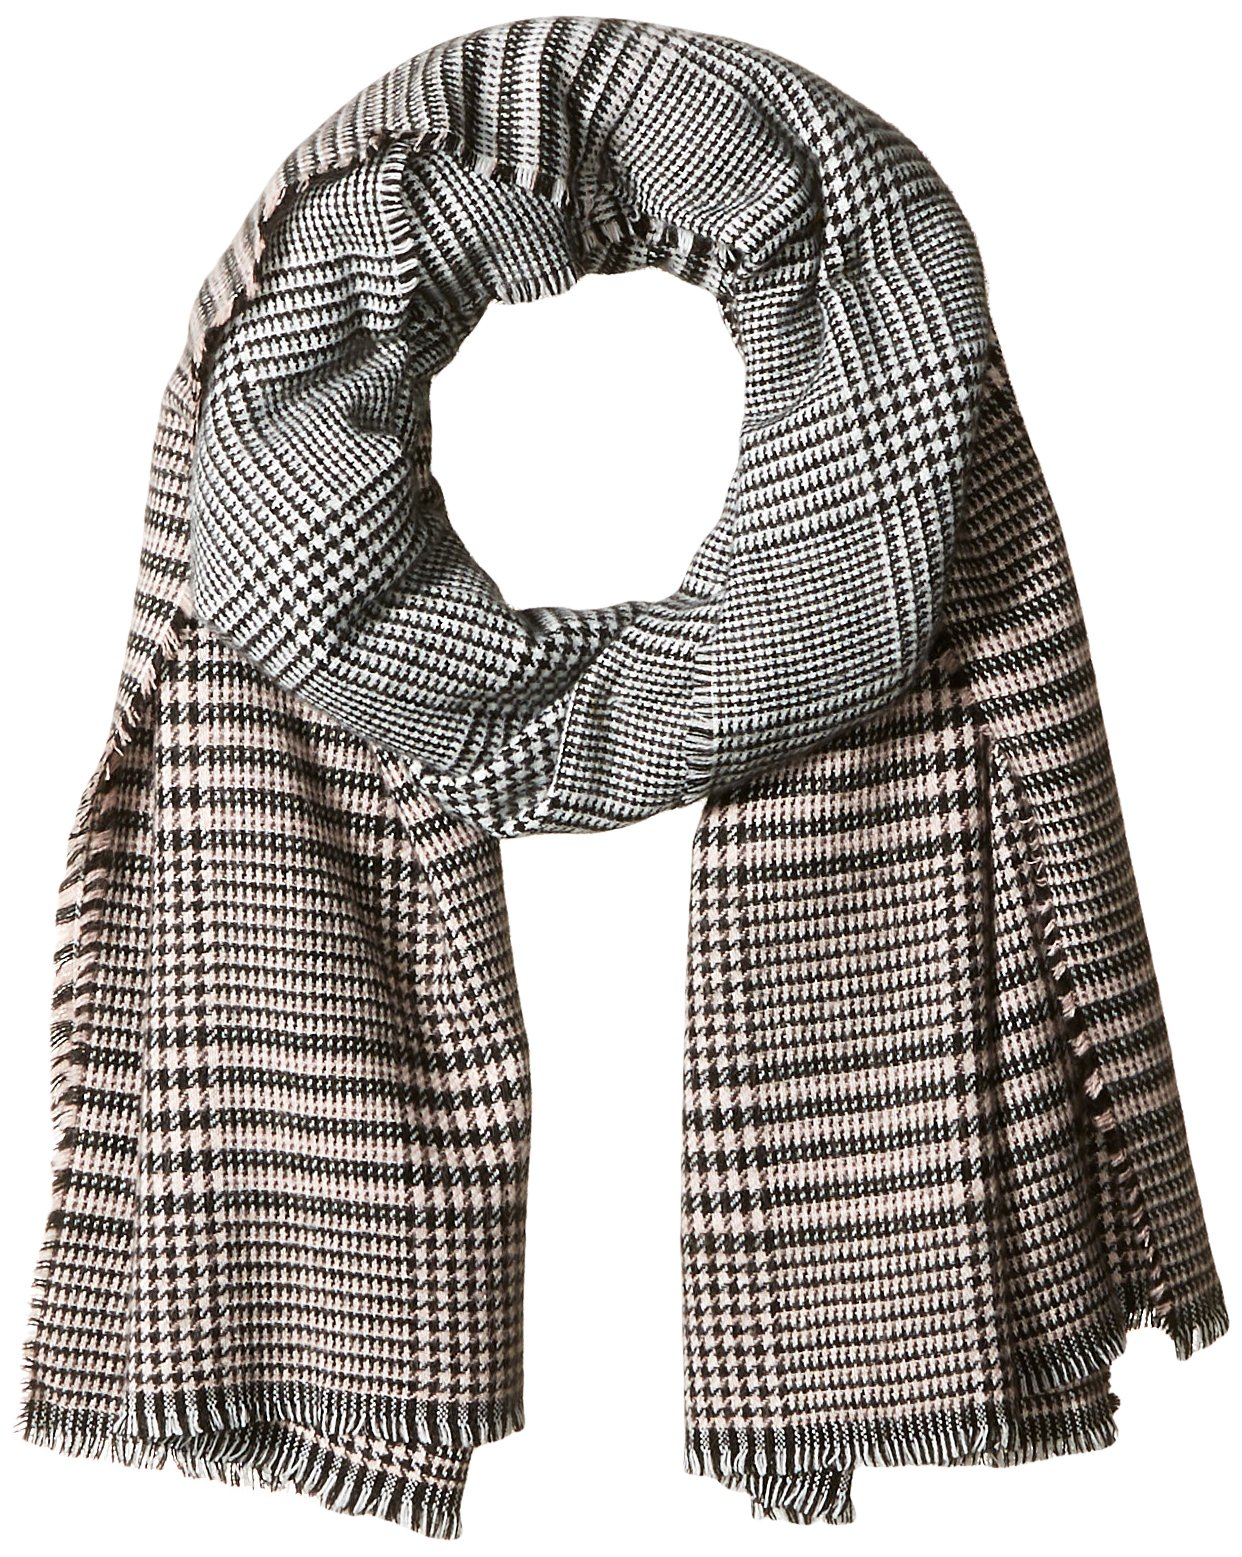 Orchid Row Women's Ombre Grid Wool Effect Cold Weather Scarf Blush O/S